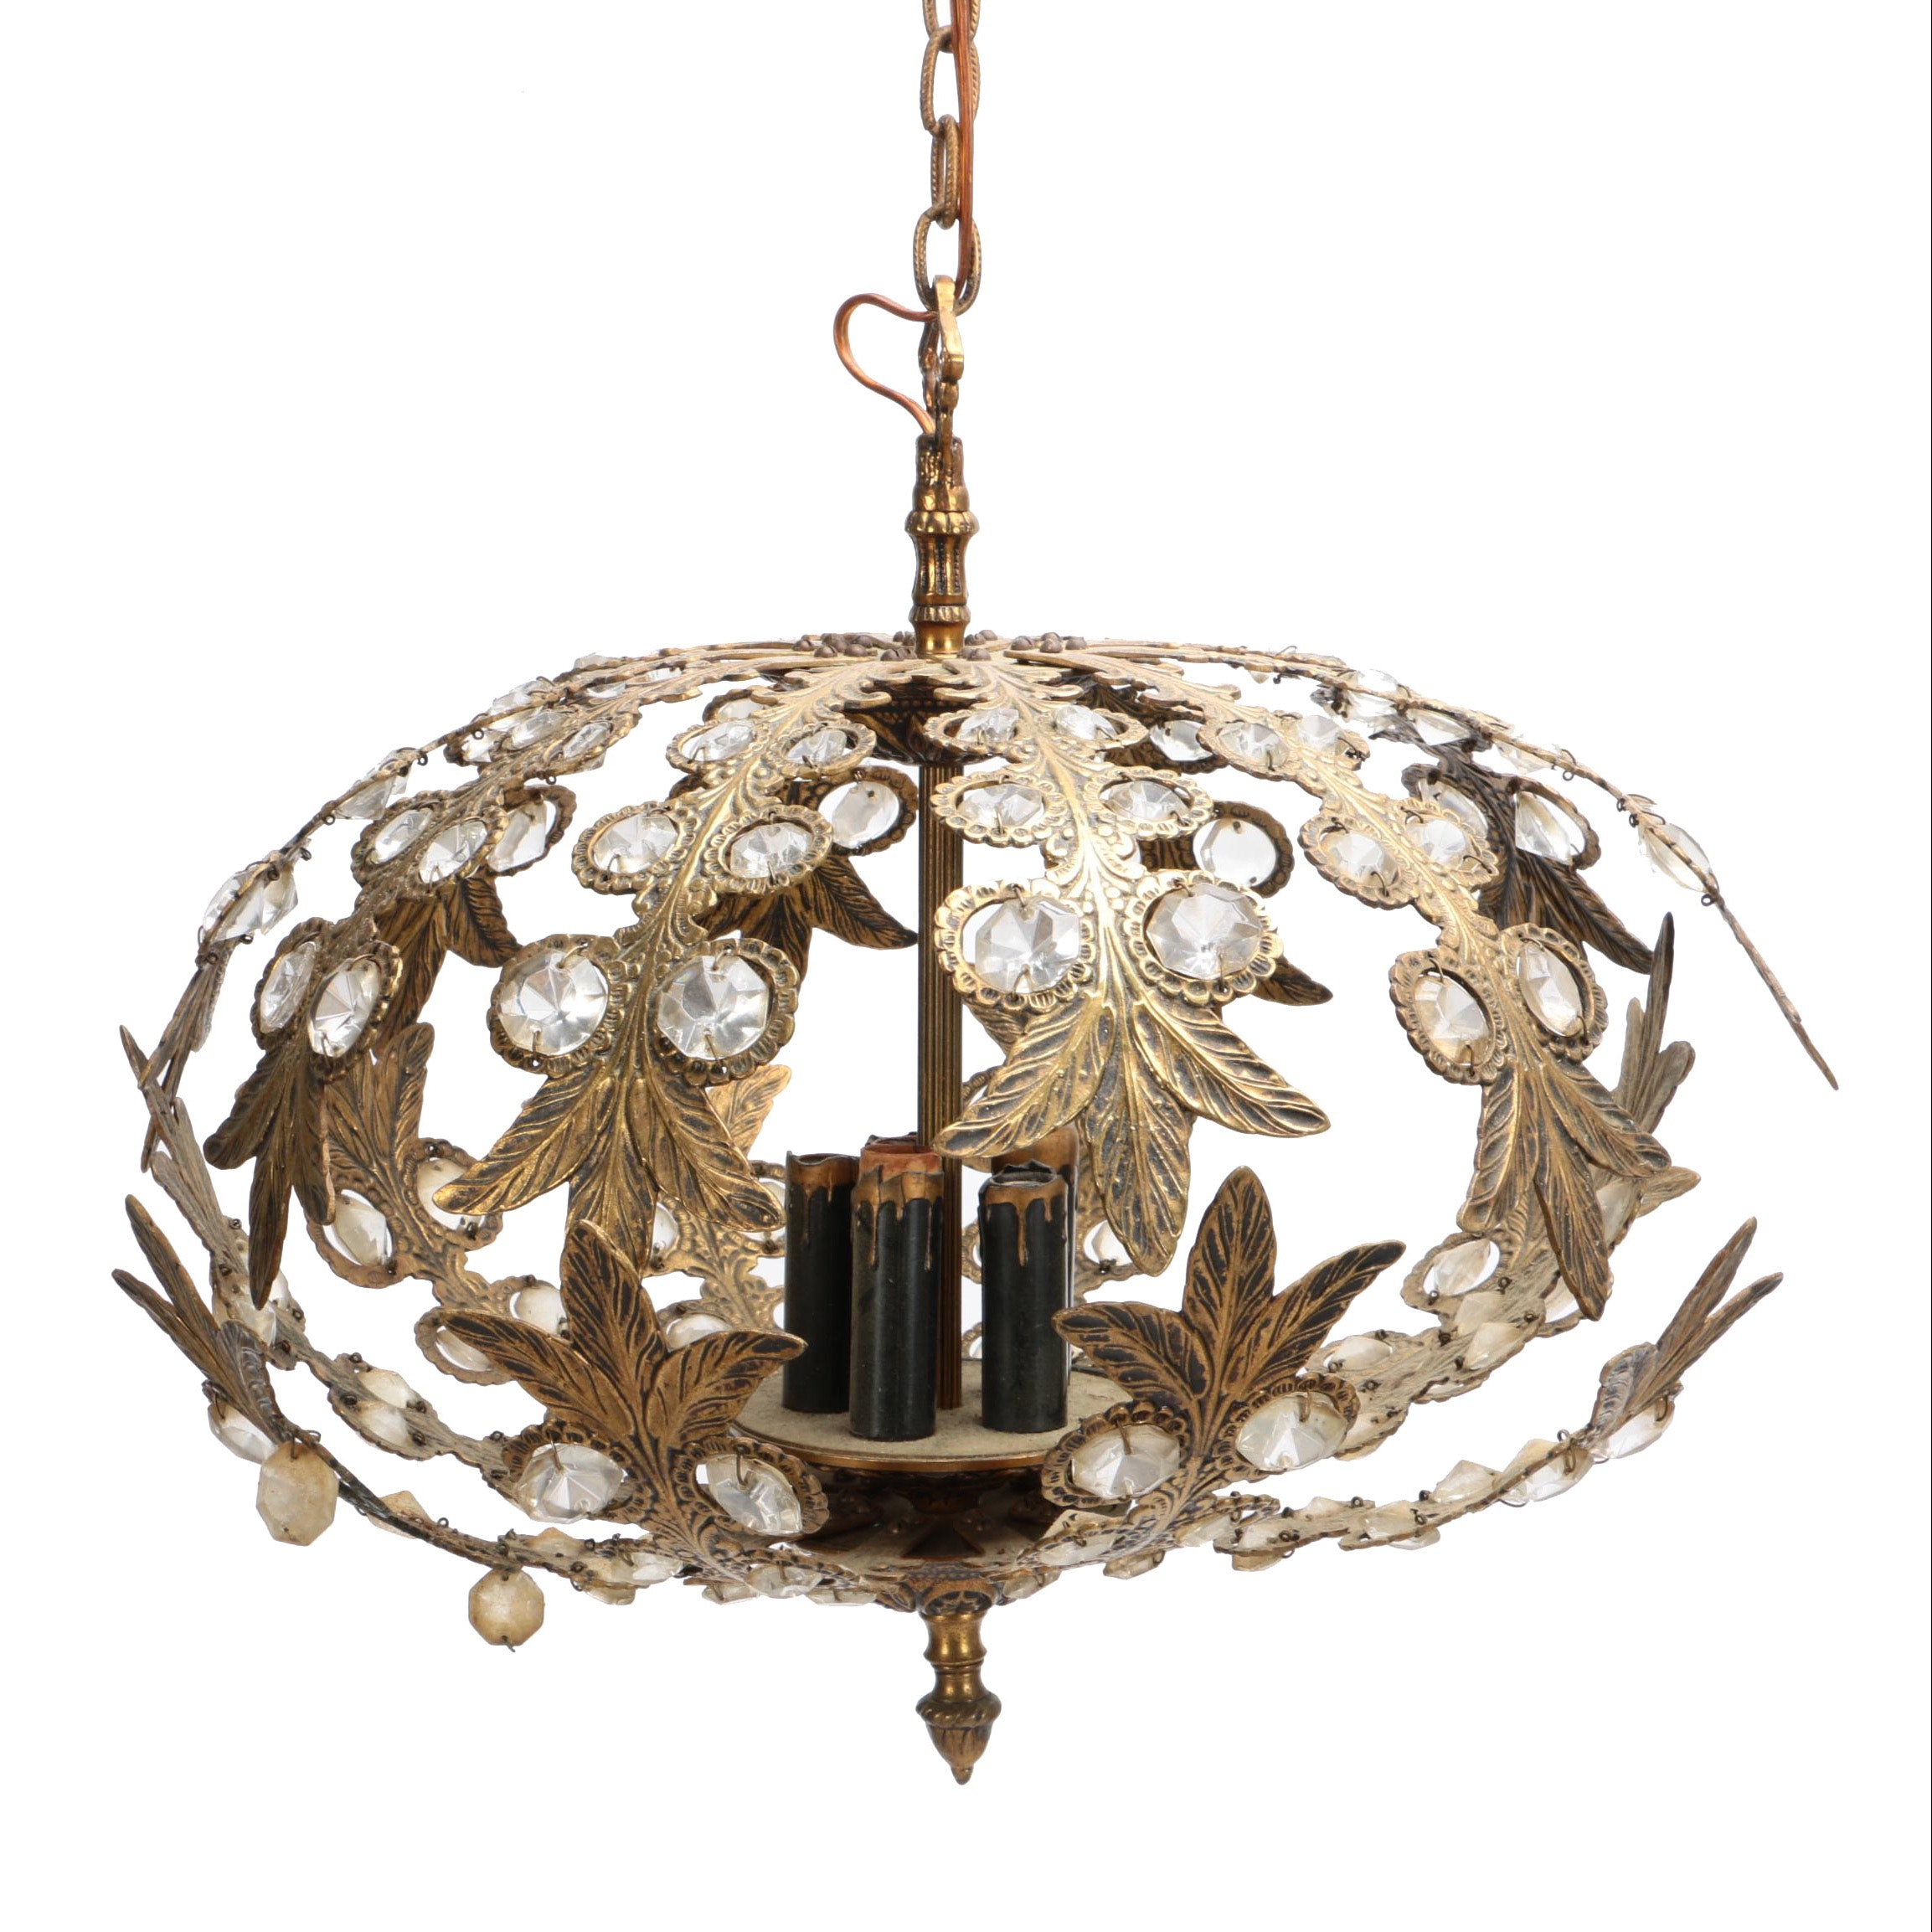 Vintage Open Work Brass and Crystal Scrolled Leaf Chandelier With Glass Accents